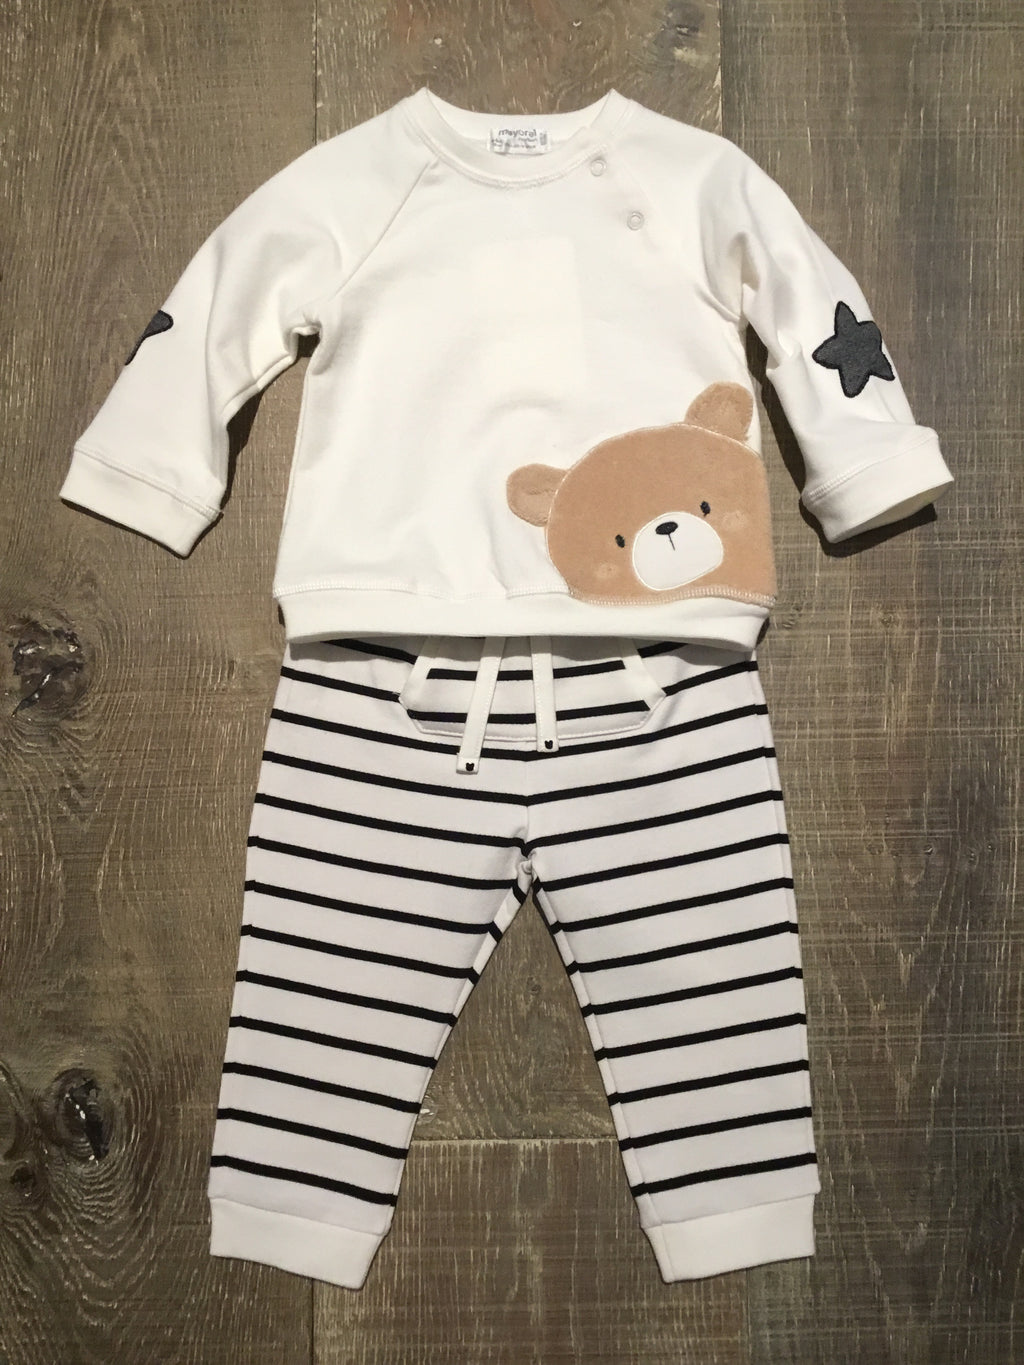 Bear Face on Ivory Shirt & Striped Pants